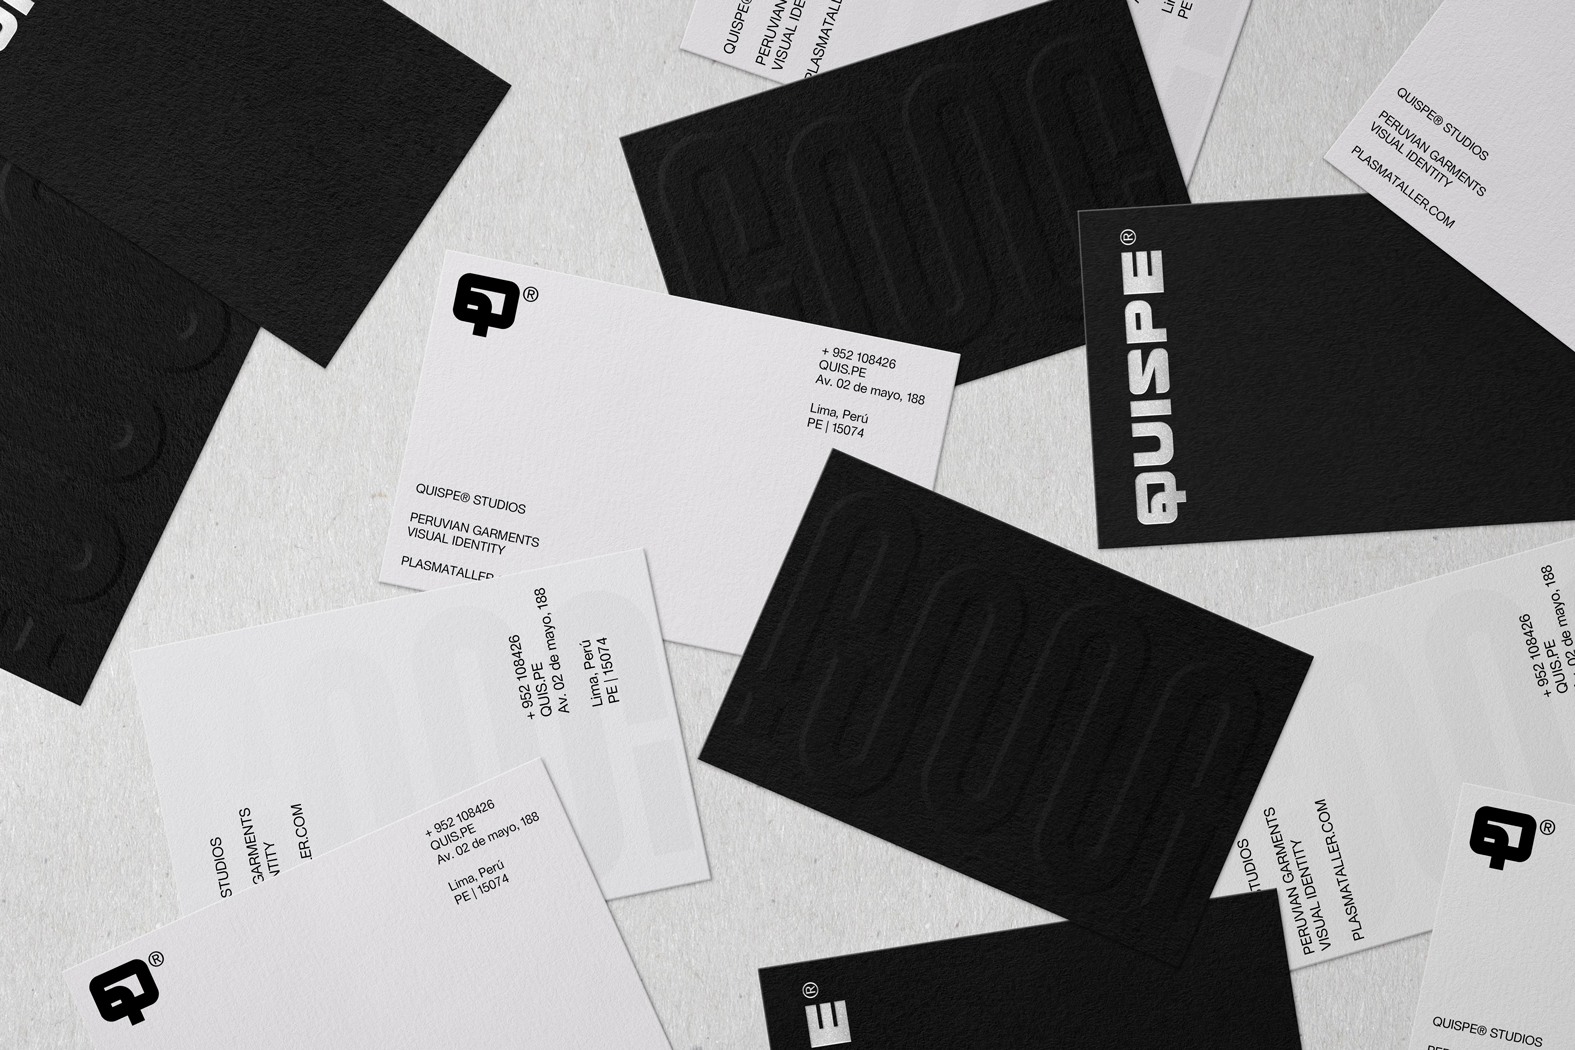 Rebrand and Identity for Quispe, Lima-based Appareal Brand/Movement by Plasma Taller